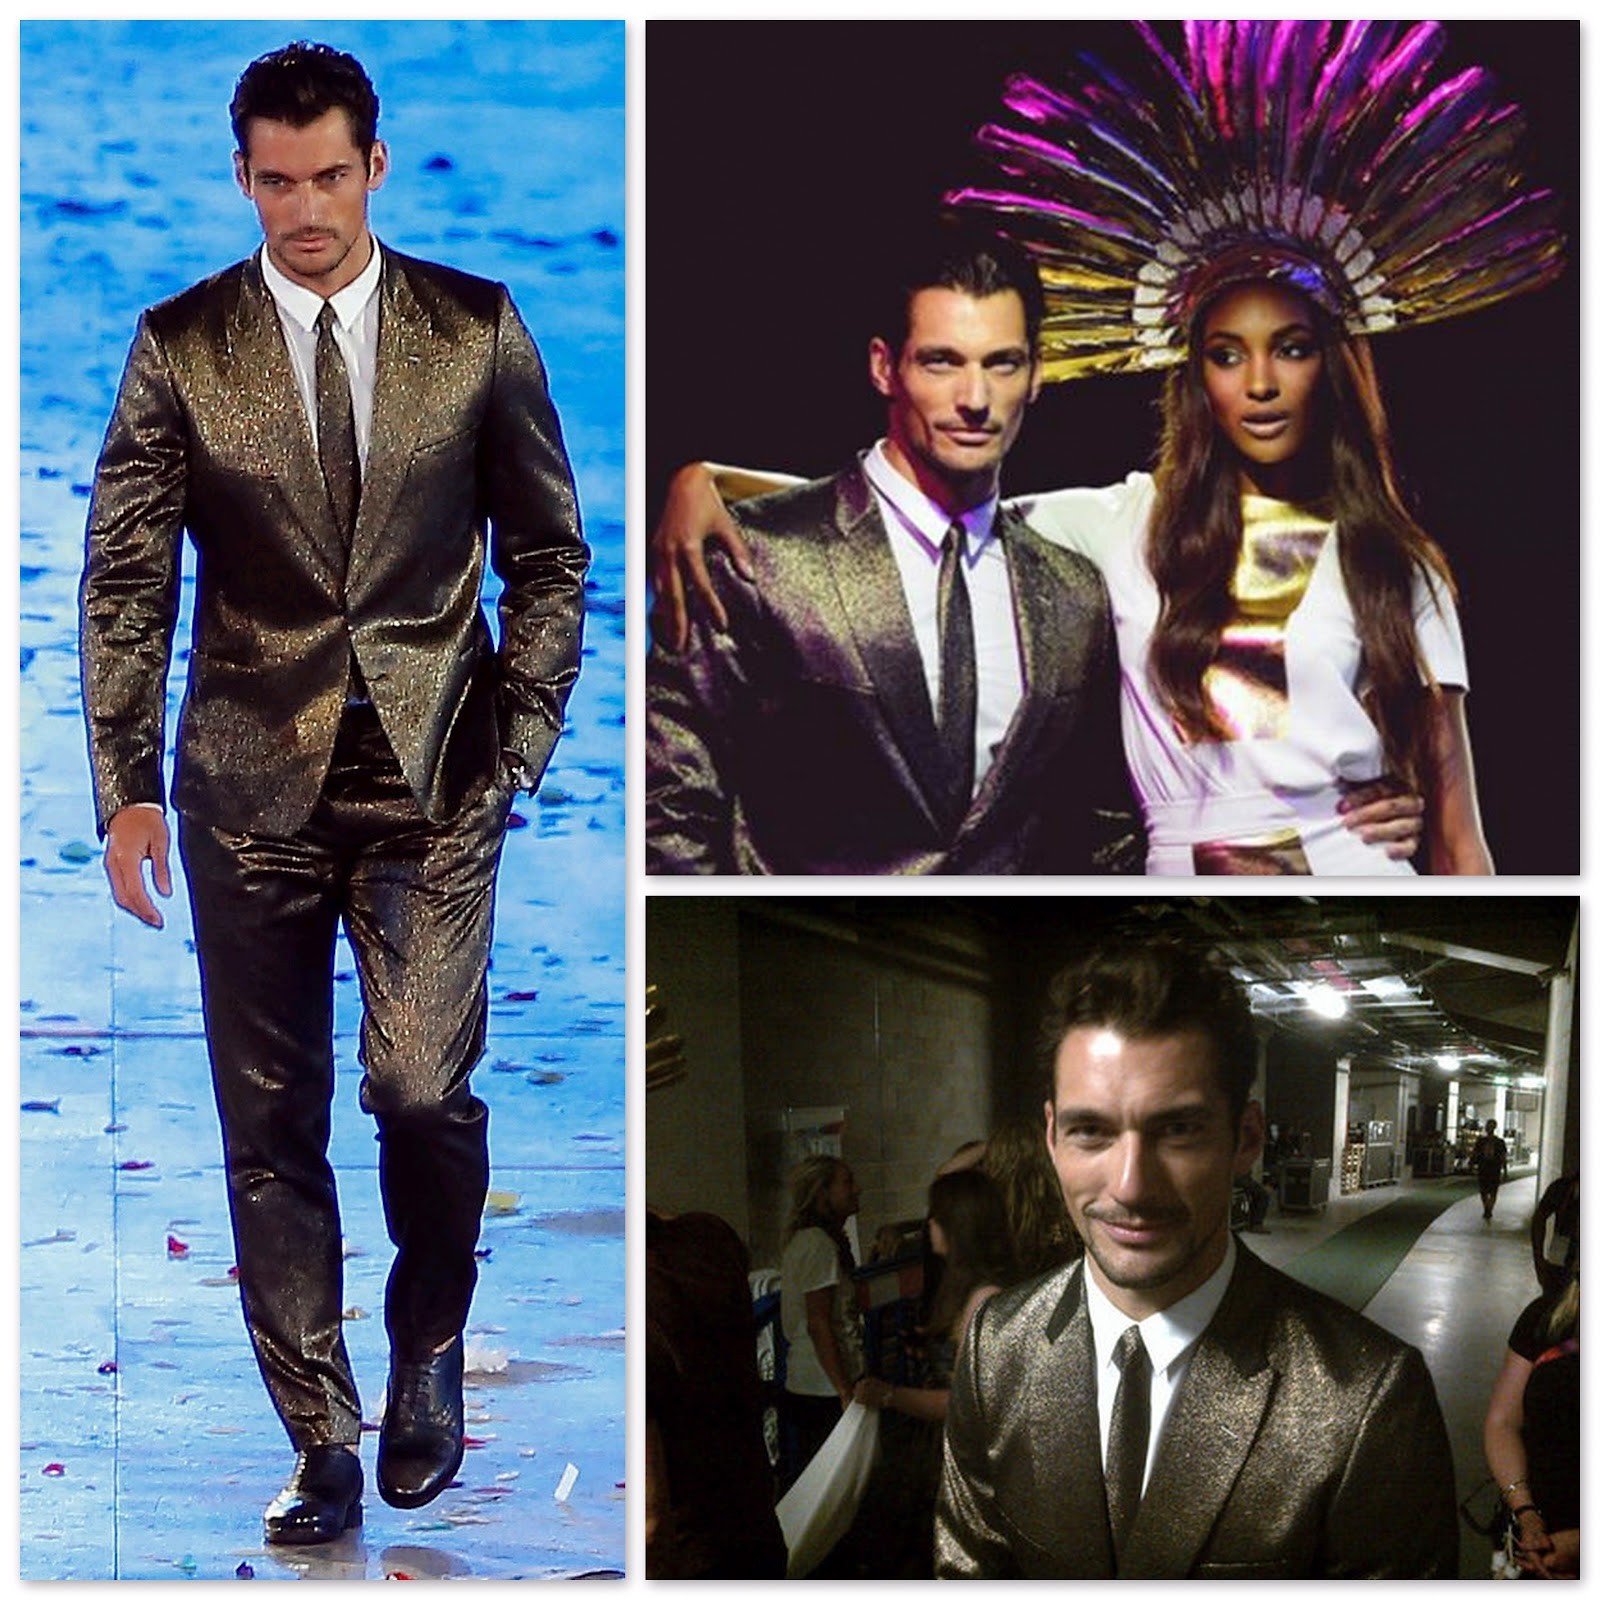 http://1.bp.blogspot.com/--hNeOCXVDtY/UCkrRlT14lI/AAAAAAAAAzk/DghBRoaIpKA/s1600/David+Gandy+-+London+2012+Closing+Ceremony.jpg